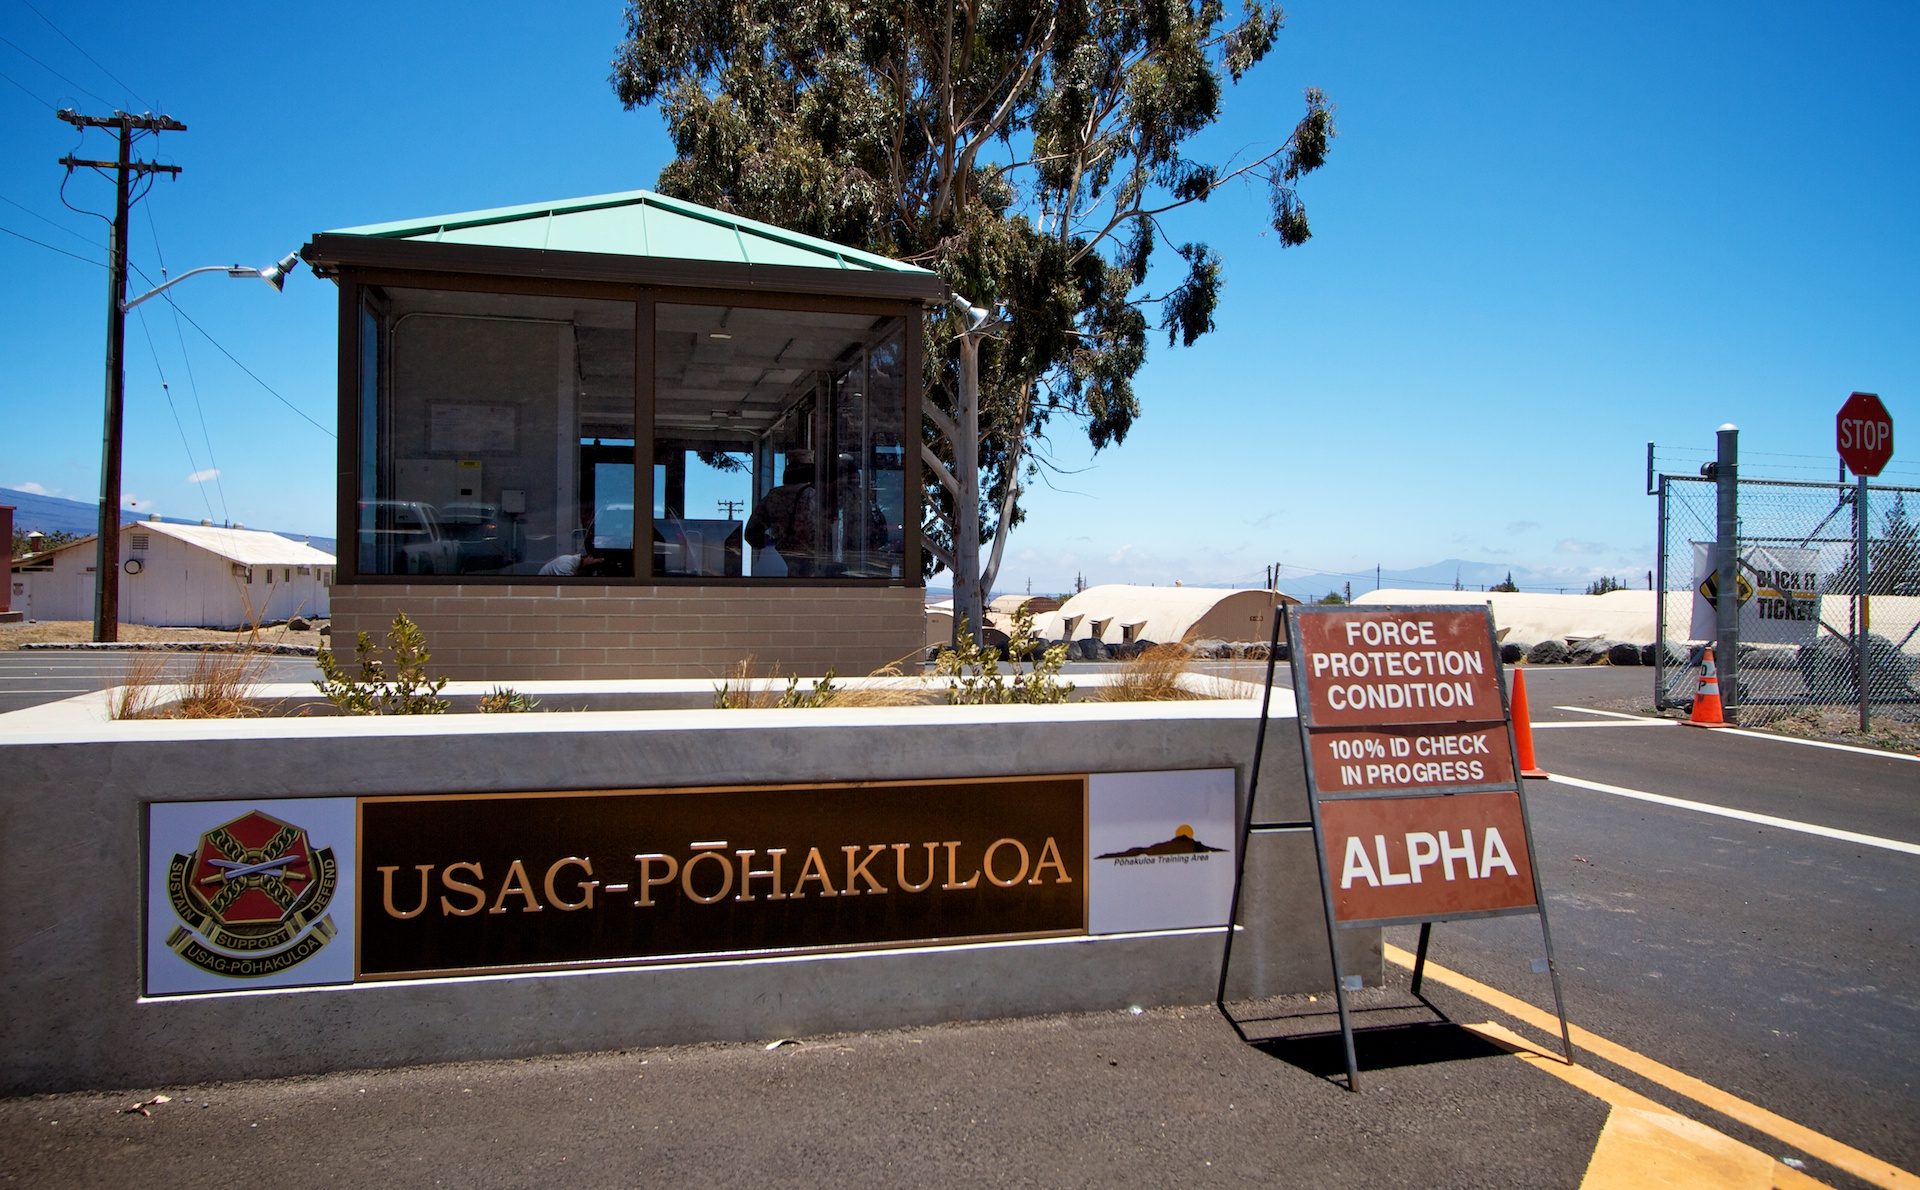 Pōhakuloa Training Area has updated its public website to provide more information to the community.